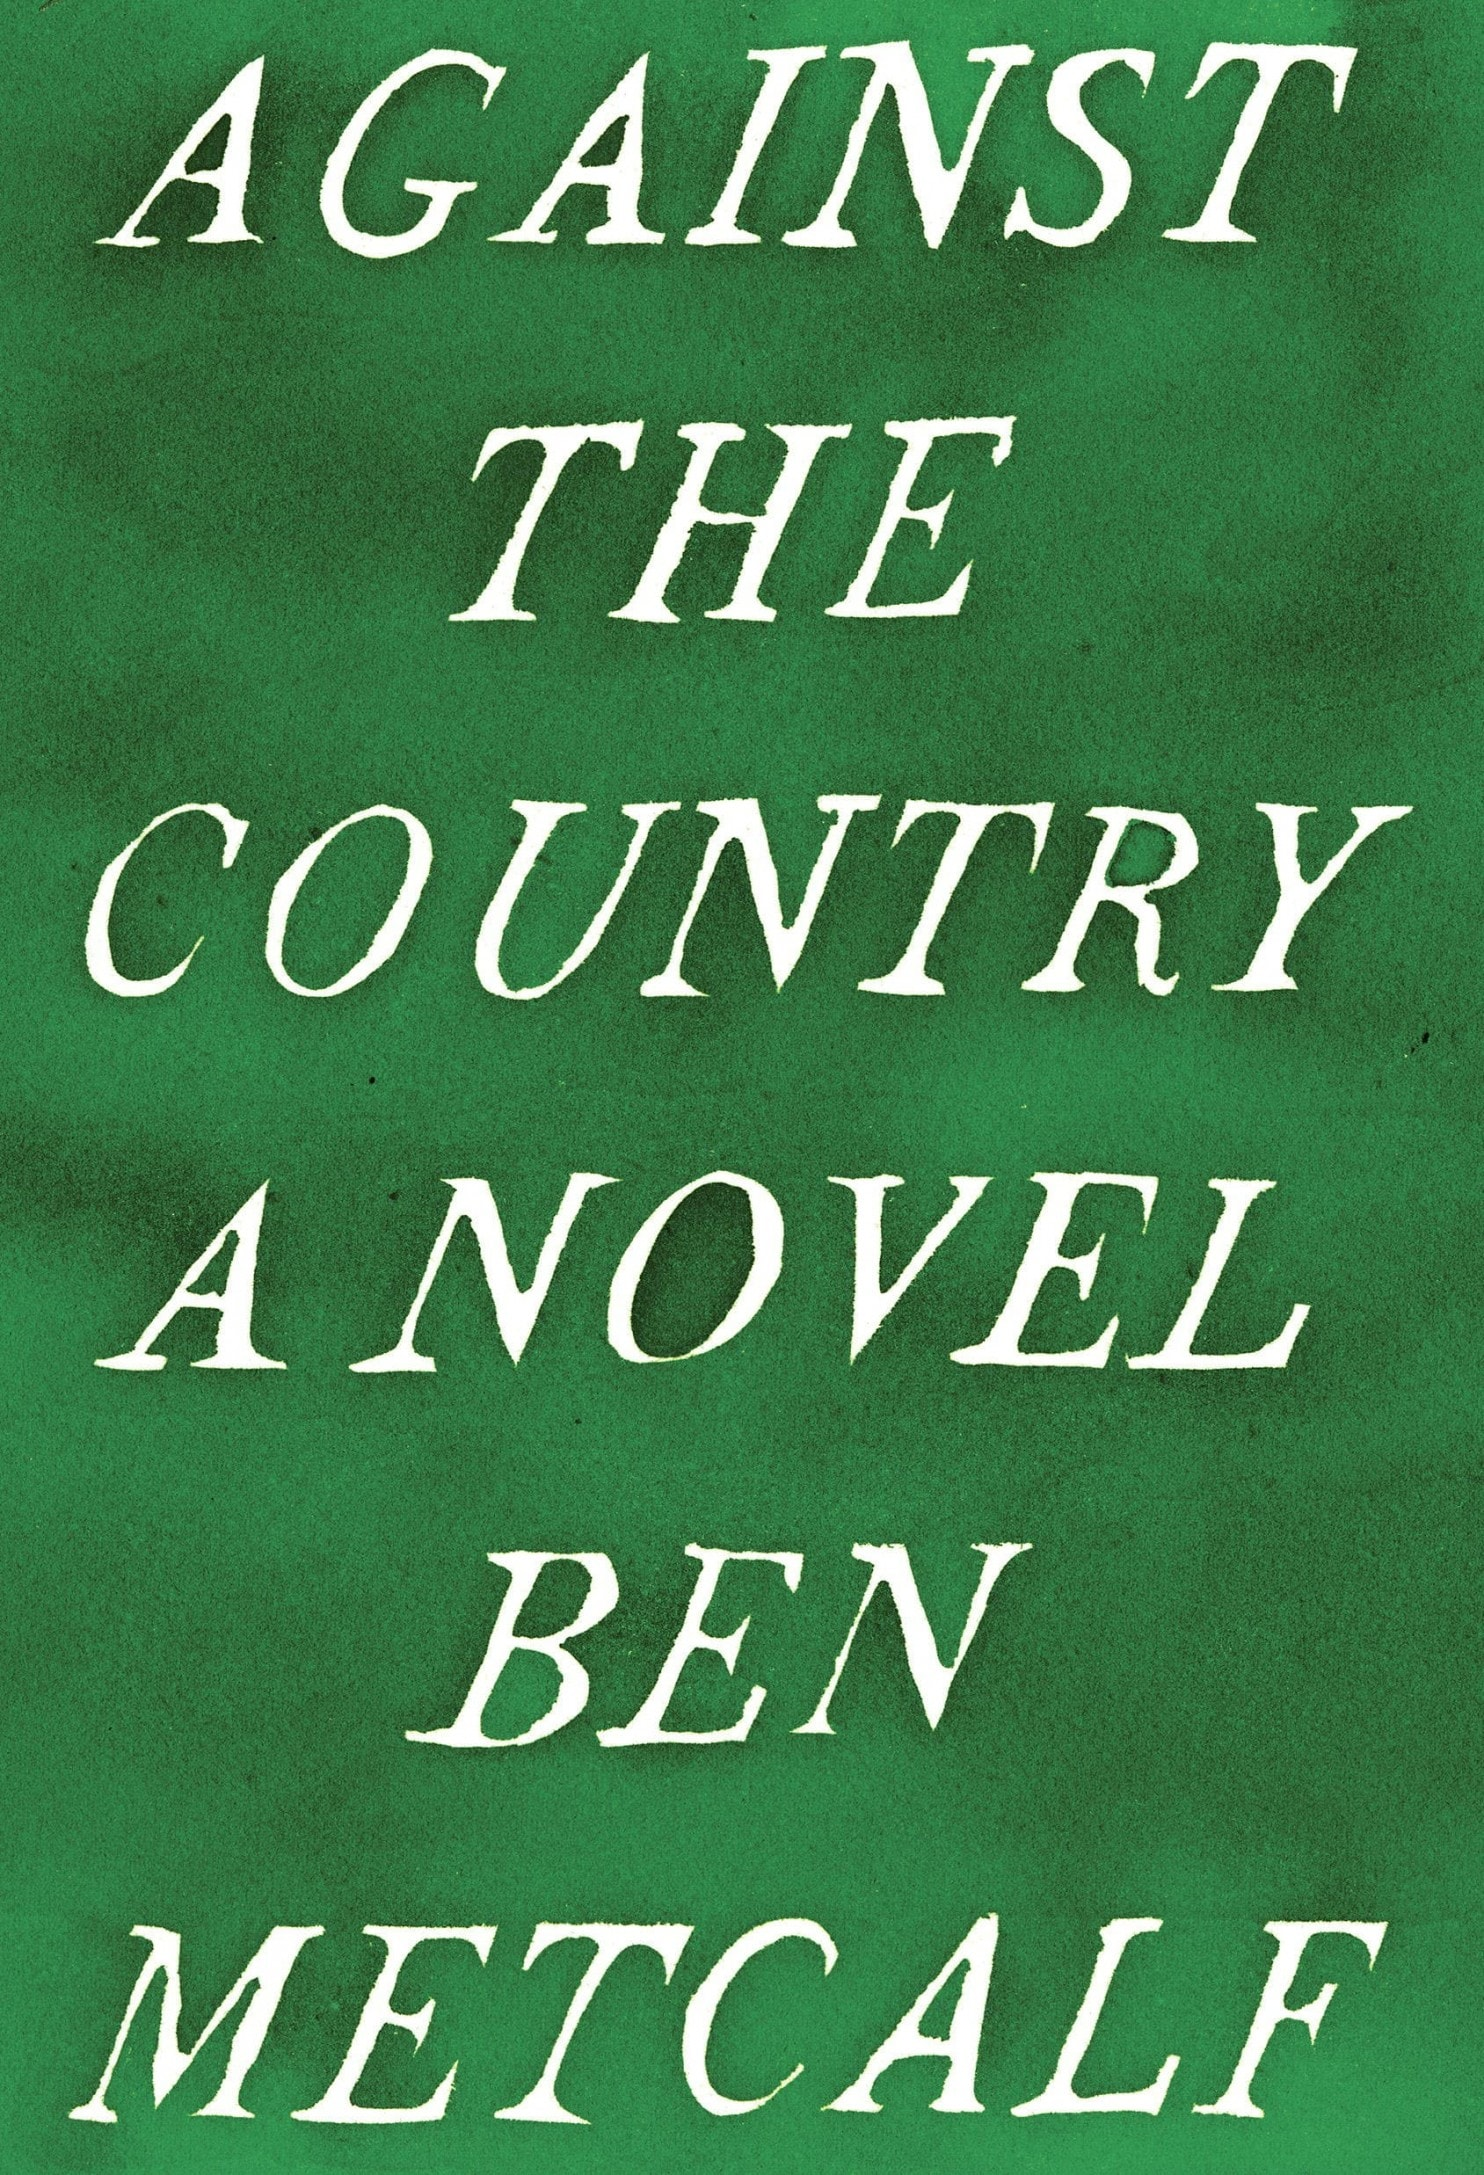 against the country ben metcalf